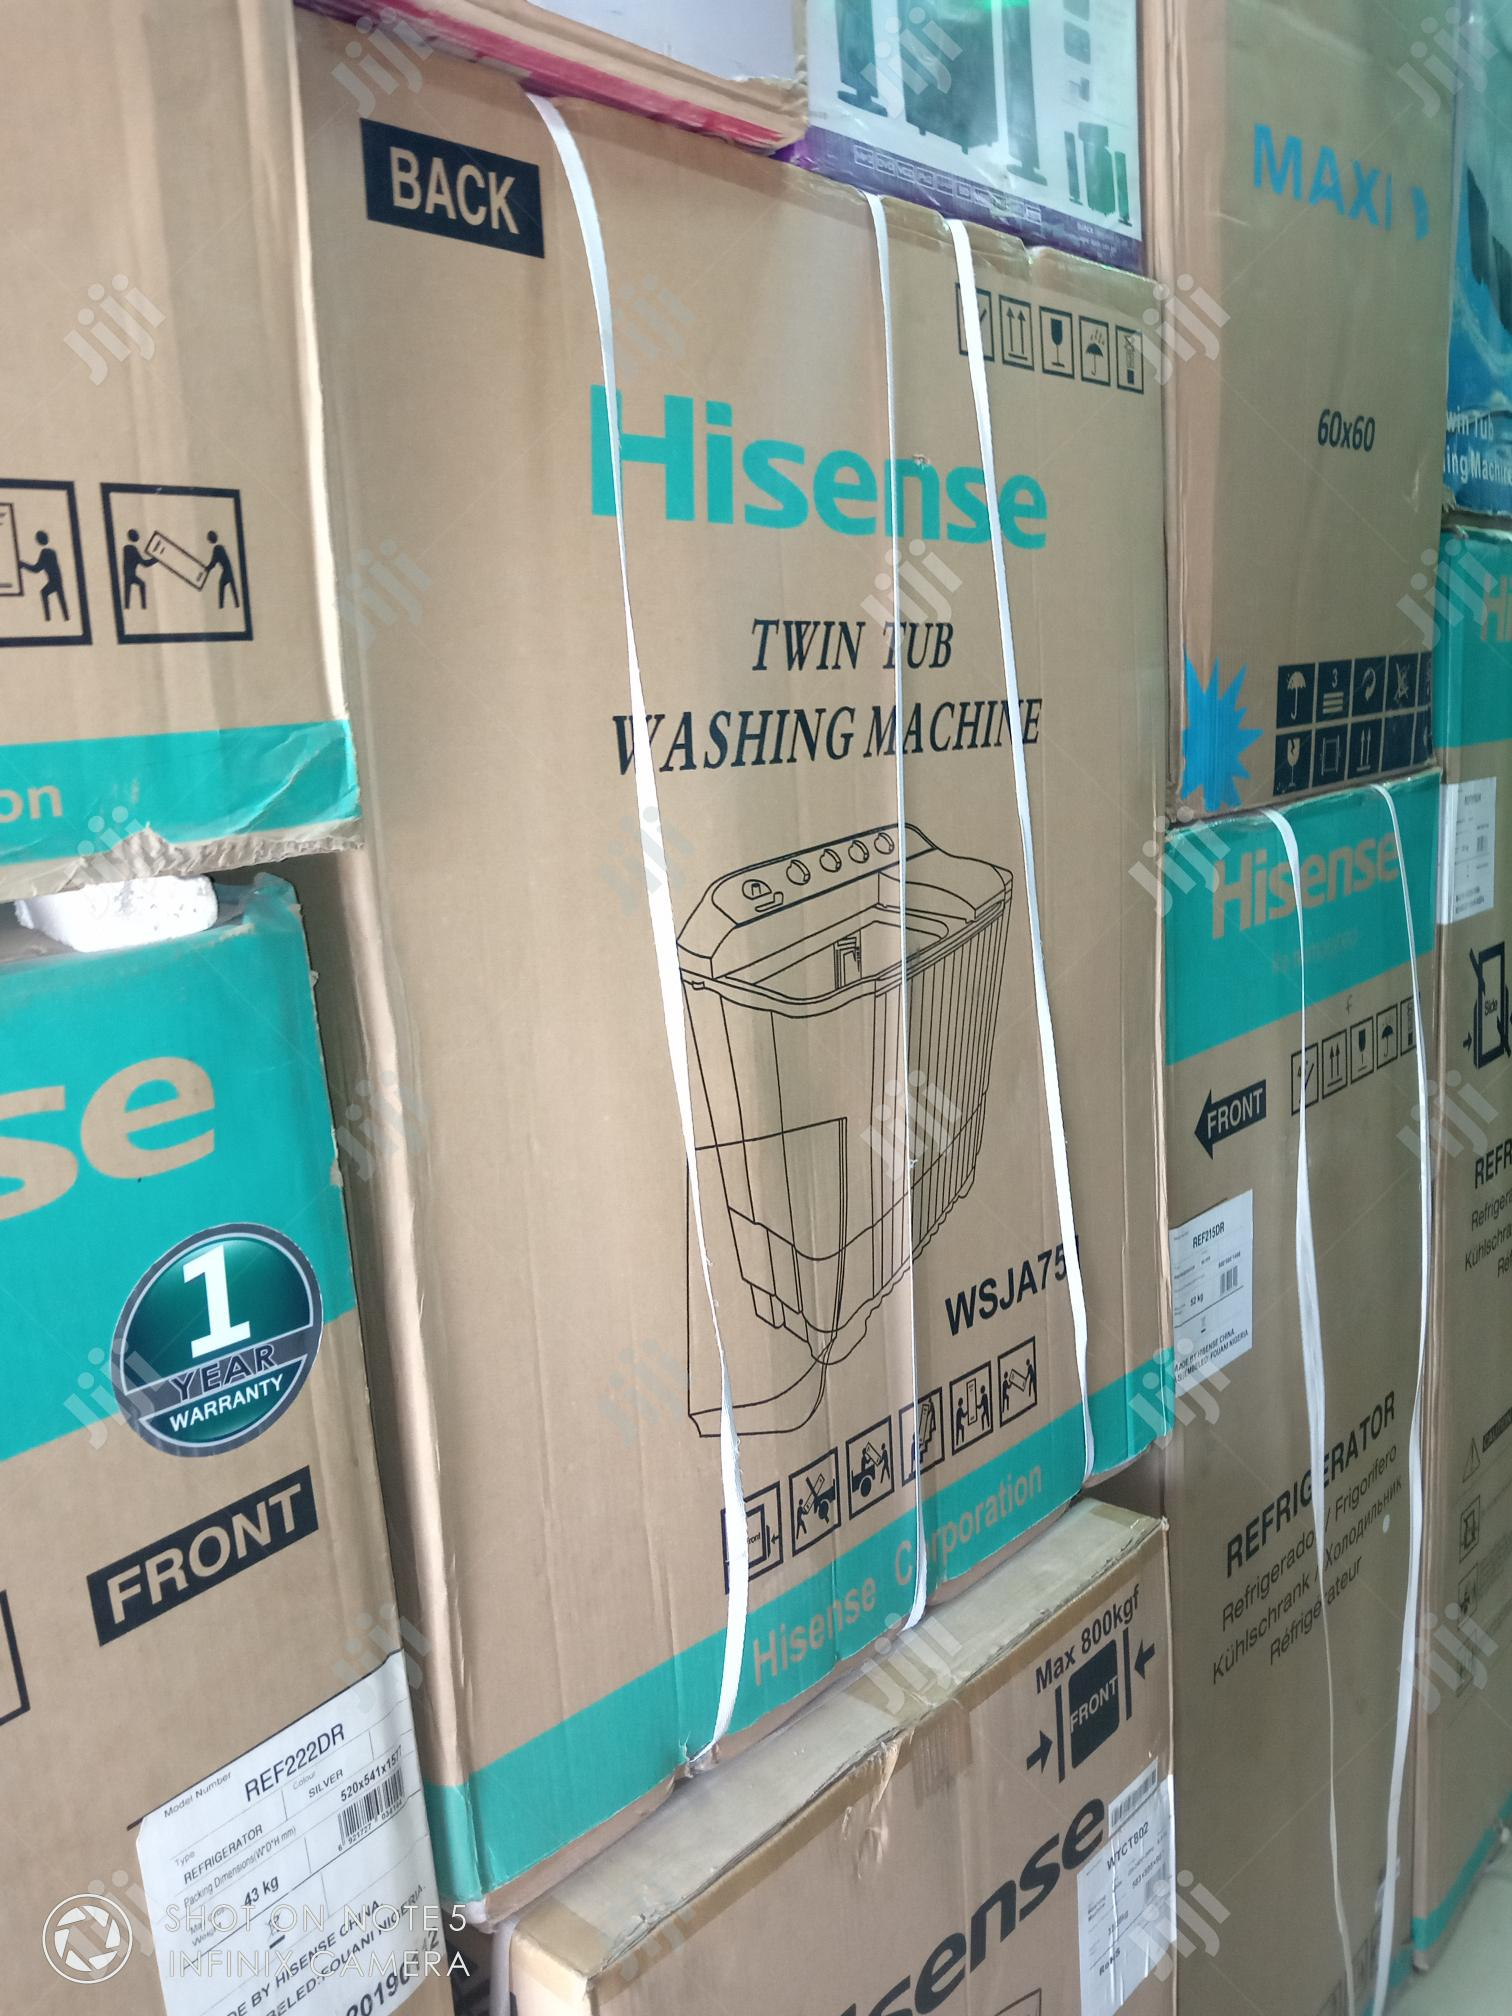 Super Hisease 10kg Washing Twin Tub Wash and Spin + Warranty 1 Years | Home Appliances for sale in Lekki Phase 1, Lagos State, Nigeria